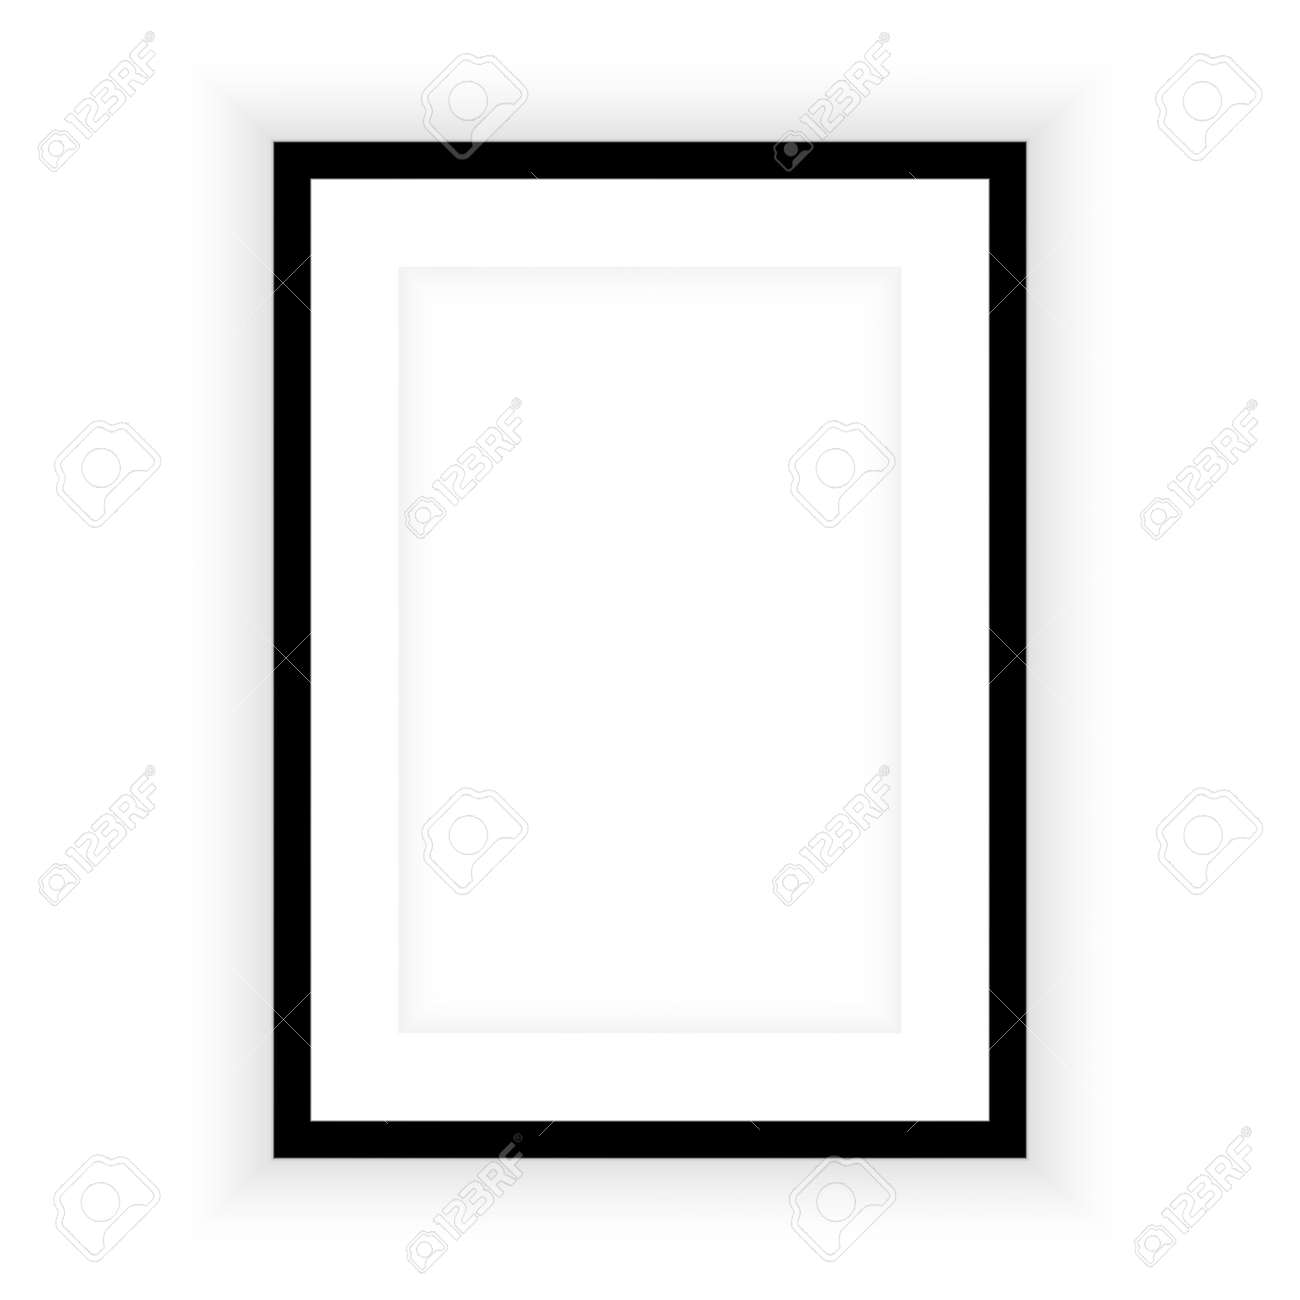 Realistic picture frame isolated on white background. Perfect for your presentations. Vector illustration - 126933923